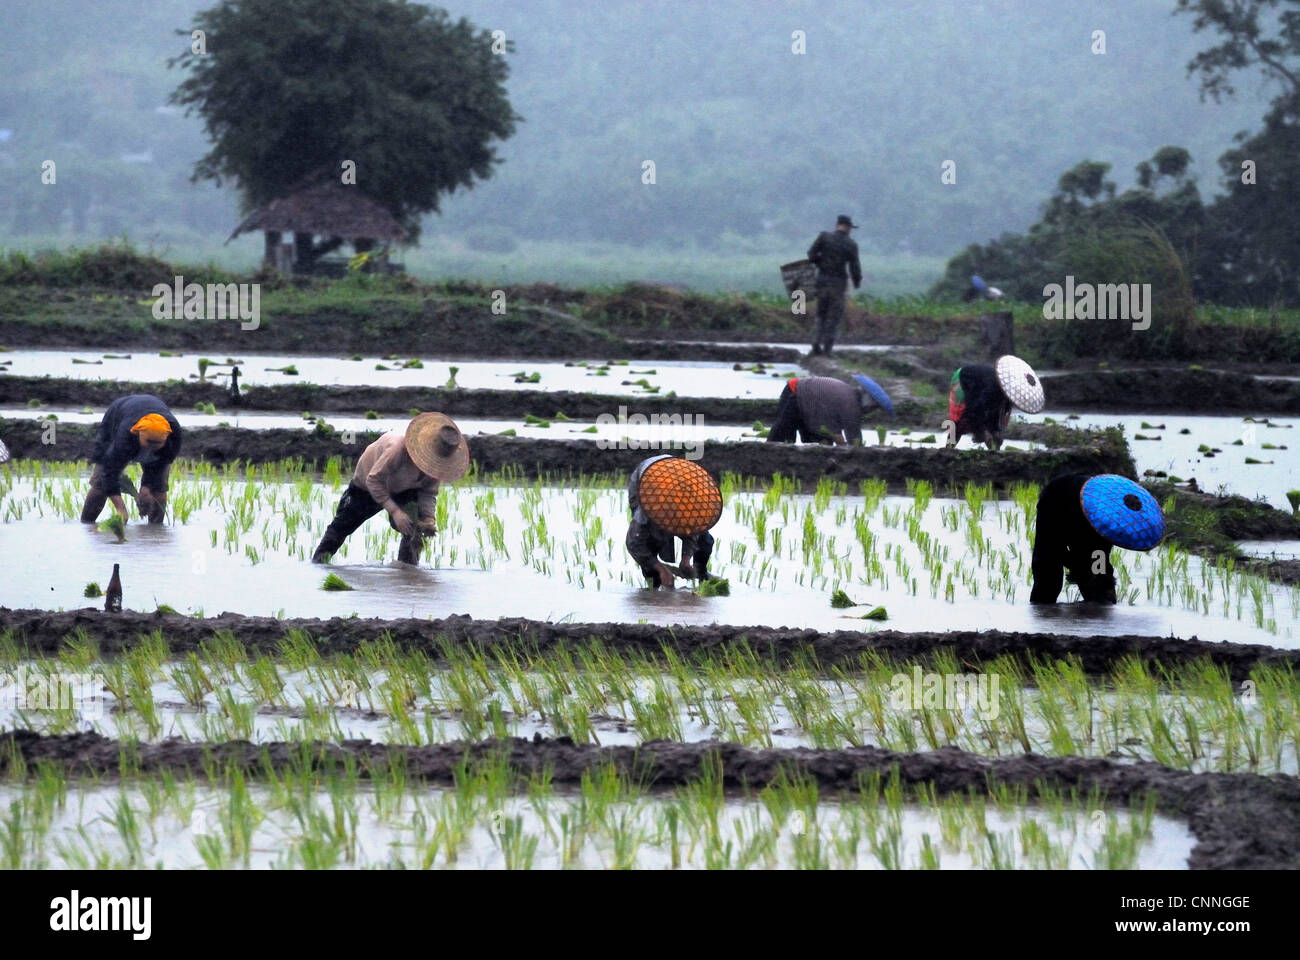 f2adc5c1d Rice workers on a rainy day in Mae sariang on 29 06 2009 in Mae sariang  Thailand